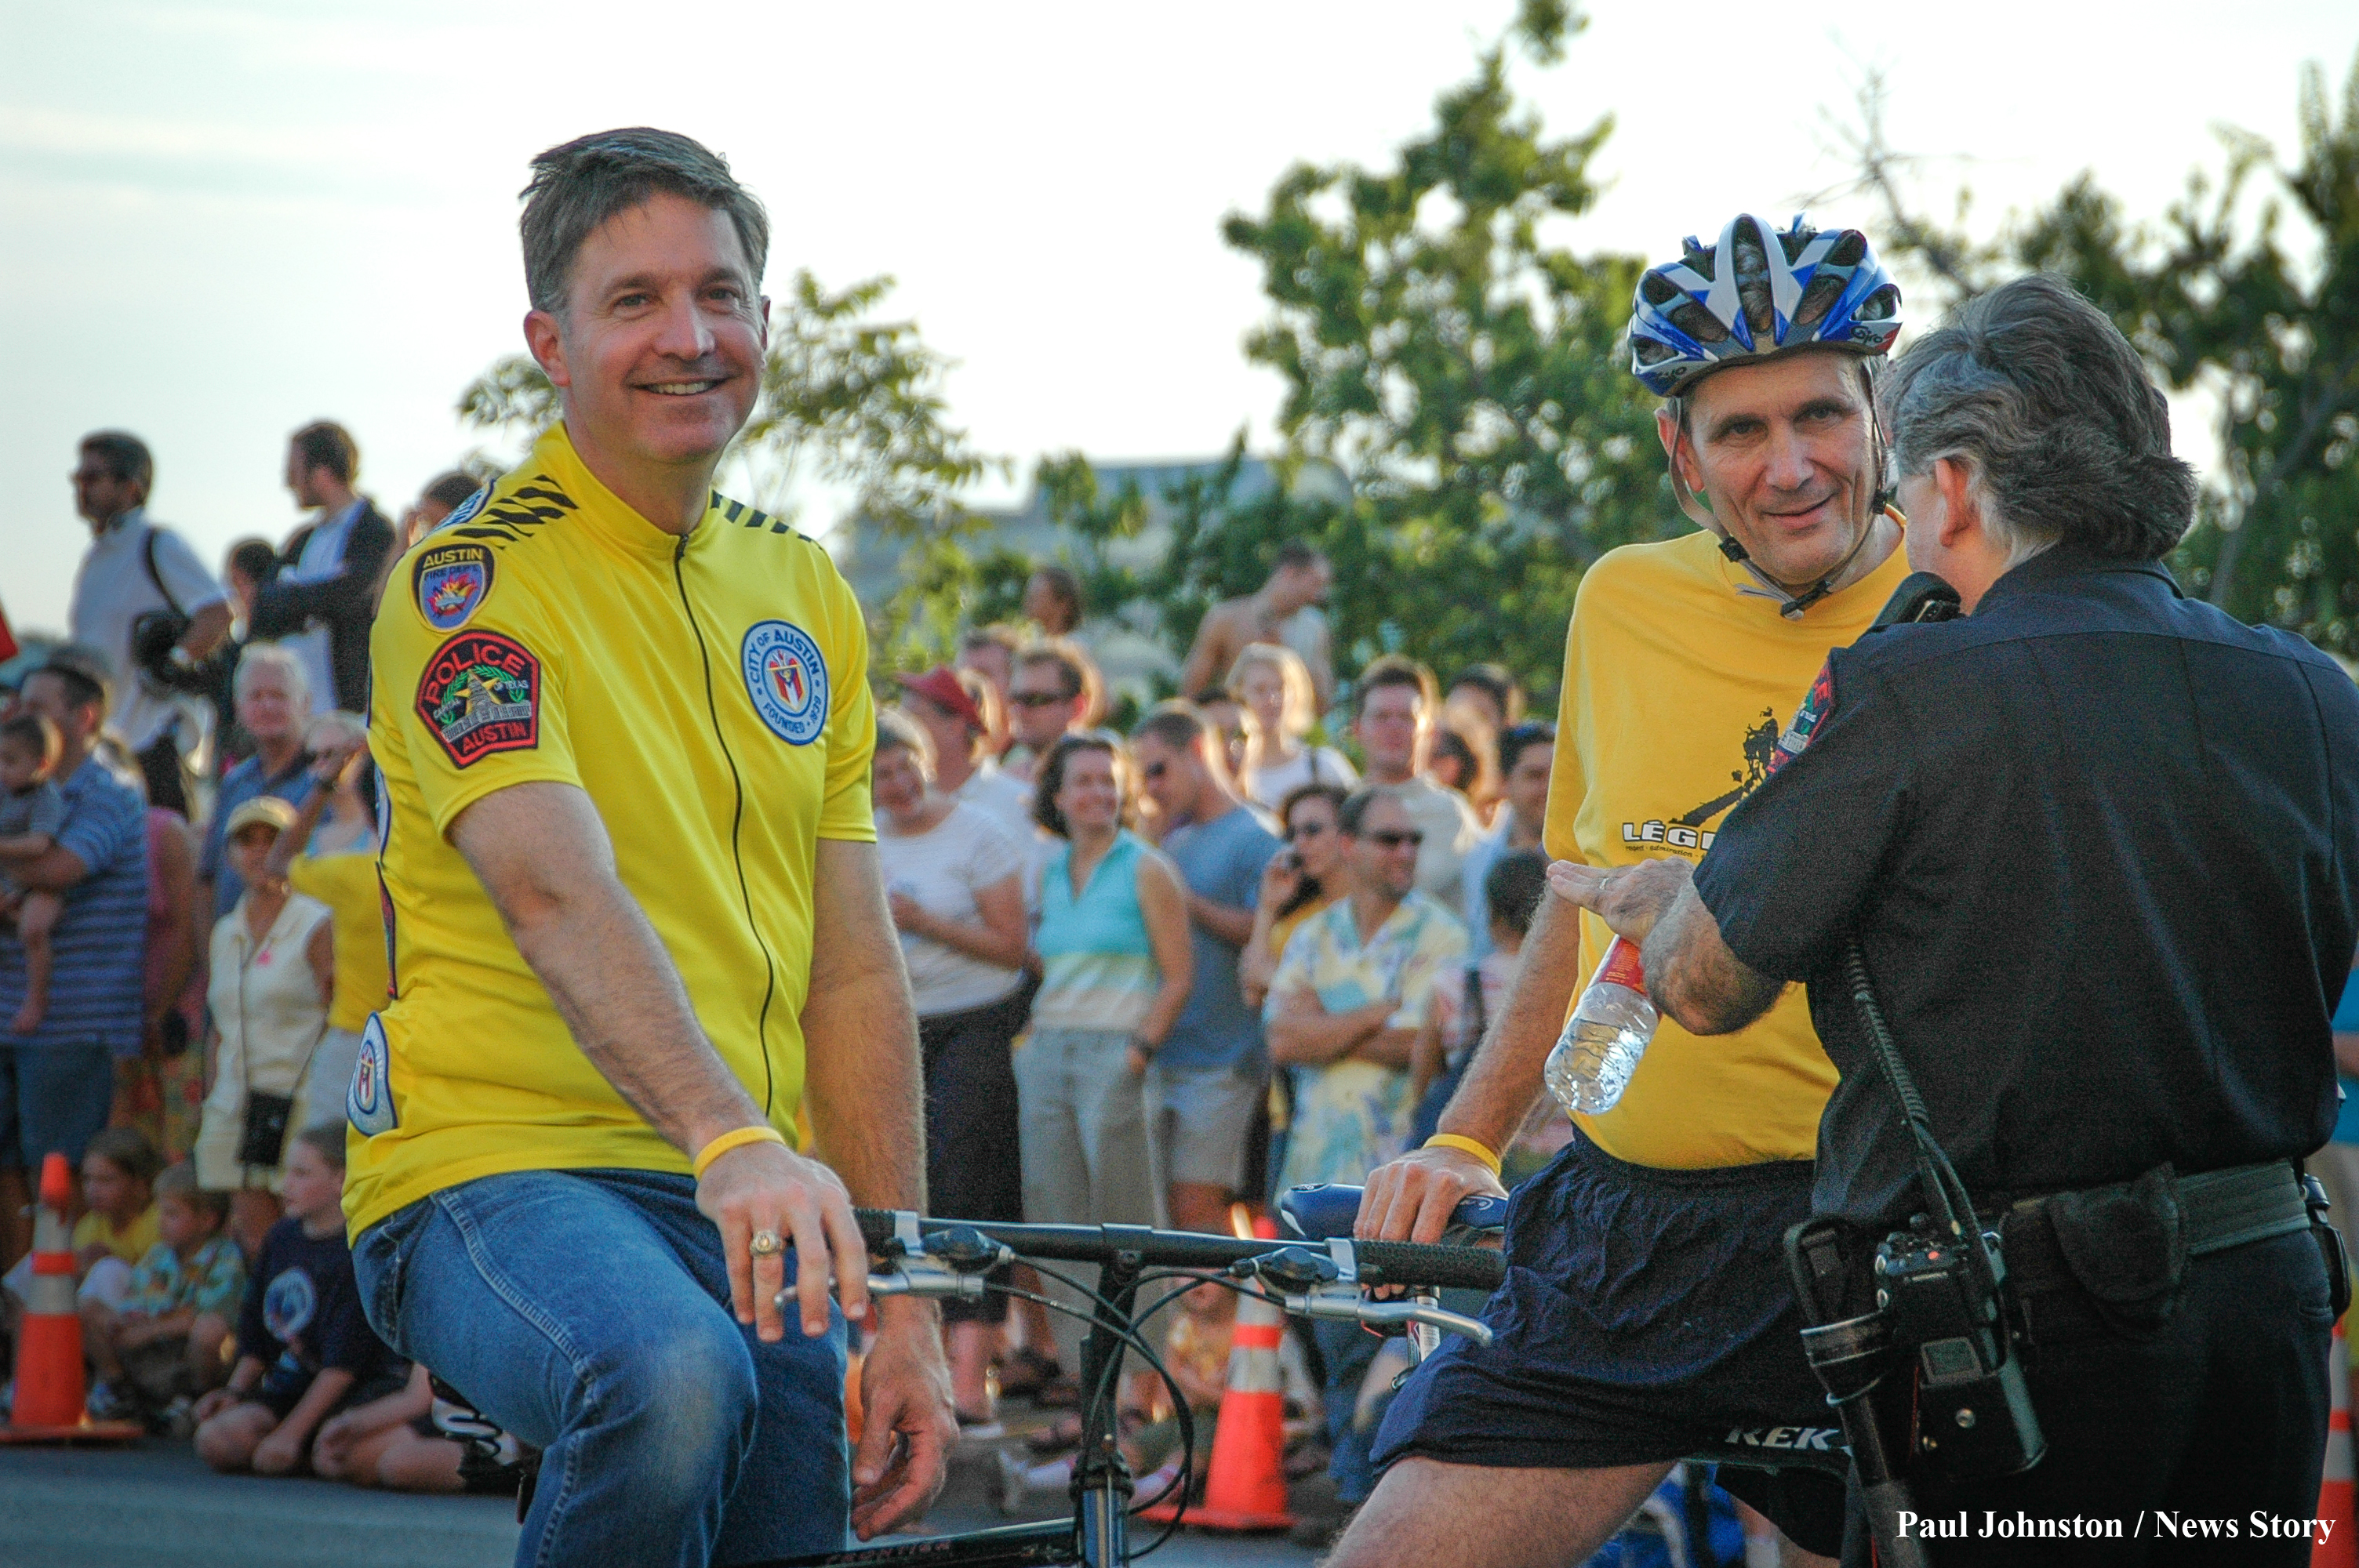 Austin Mayor Will Wynn (left) and Congressman Lloyd Doggett (right) participate in the bicycle parade in honor of Lance Armstrong on August 13, 2004 in Austin, Texas.  Copyright - Paul Johnston / Austin News Story - austinnewsstory.com